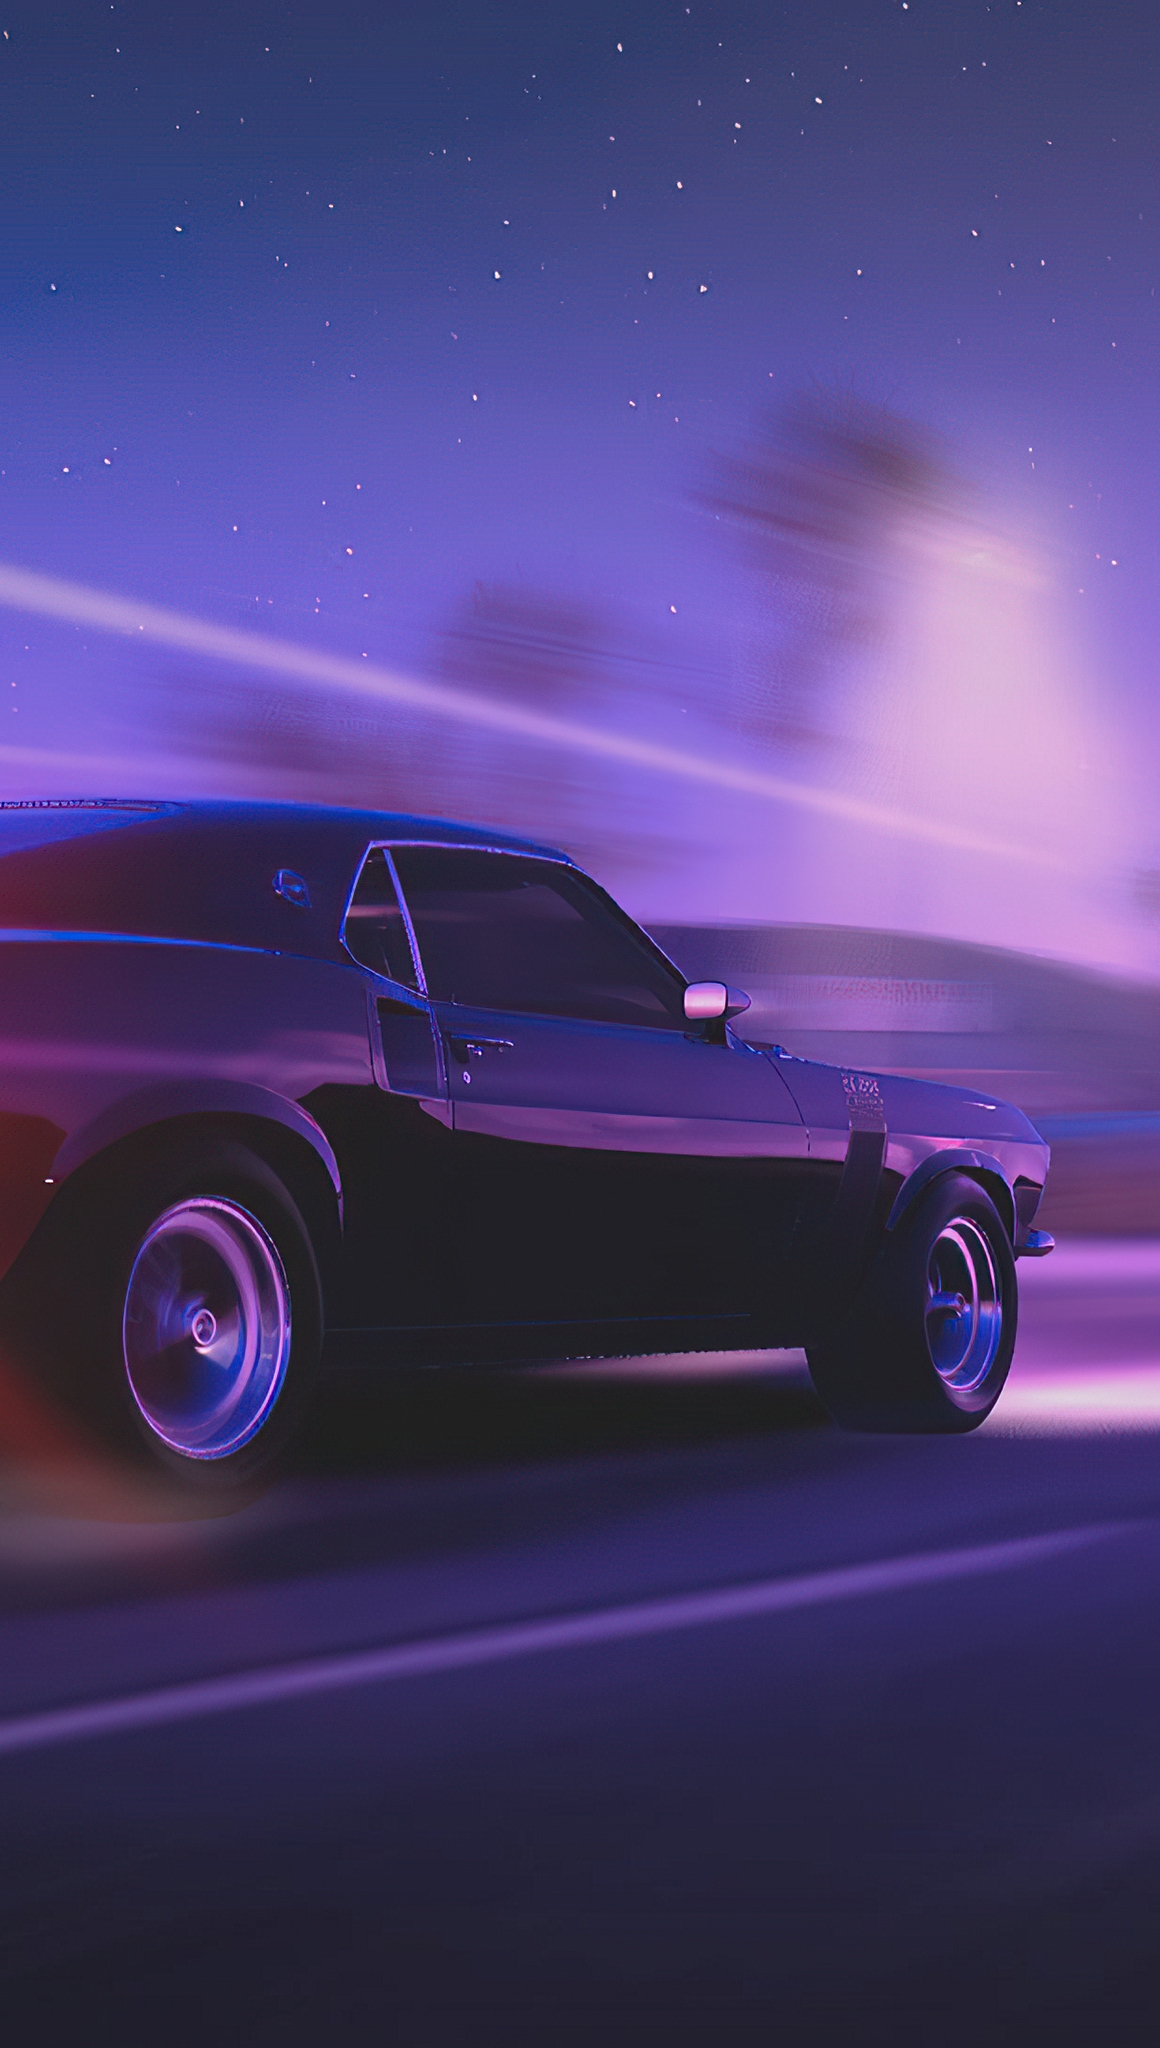 Wallpaper Ford Mustang The Crew 2 Vertical